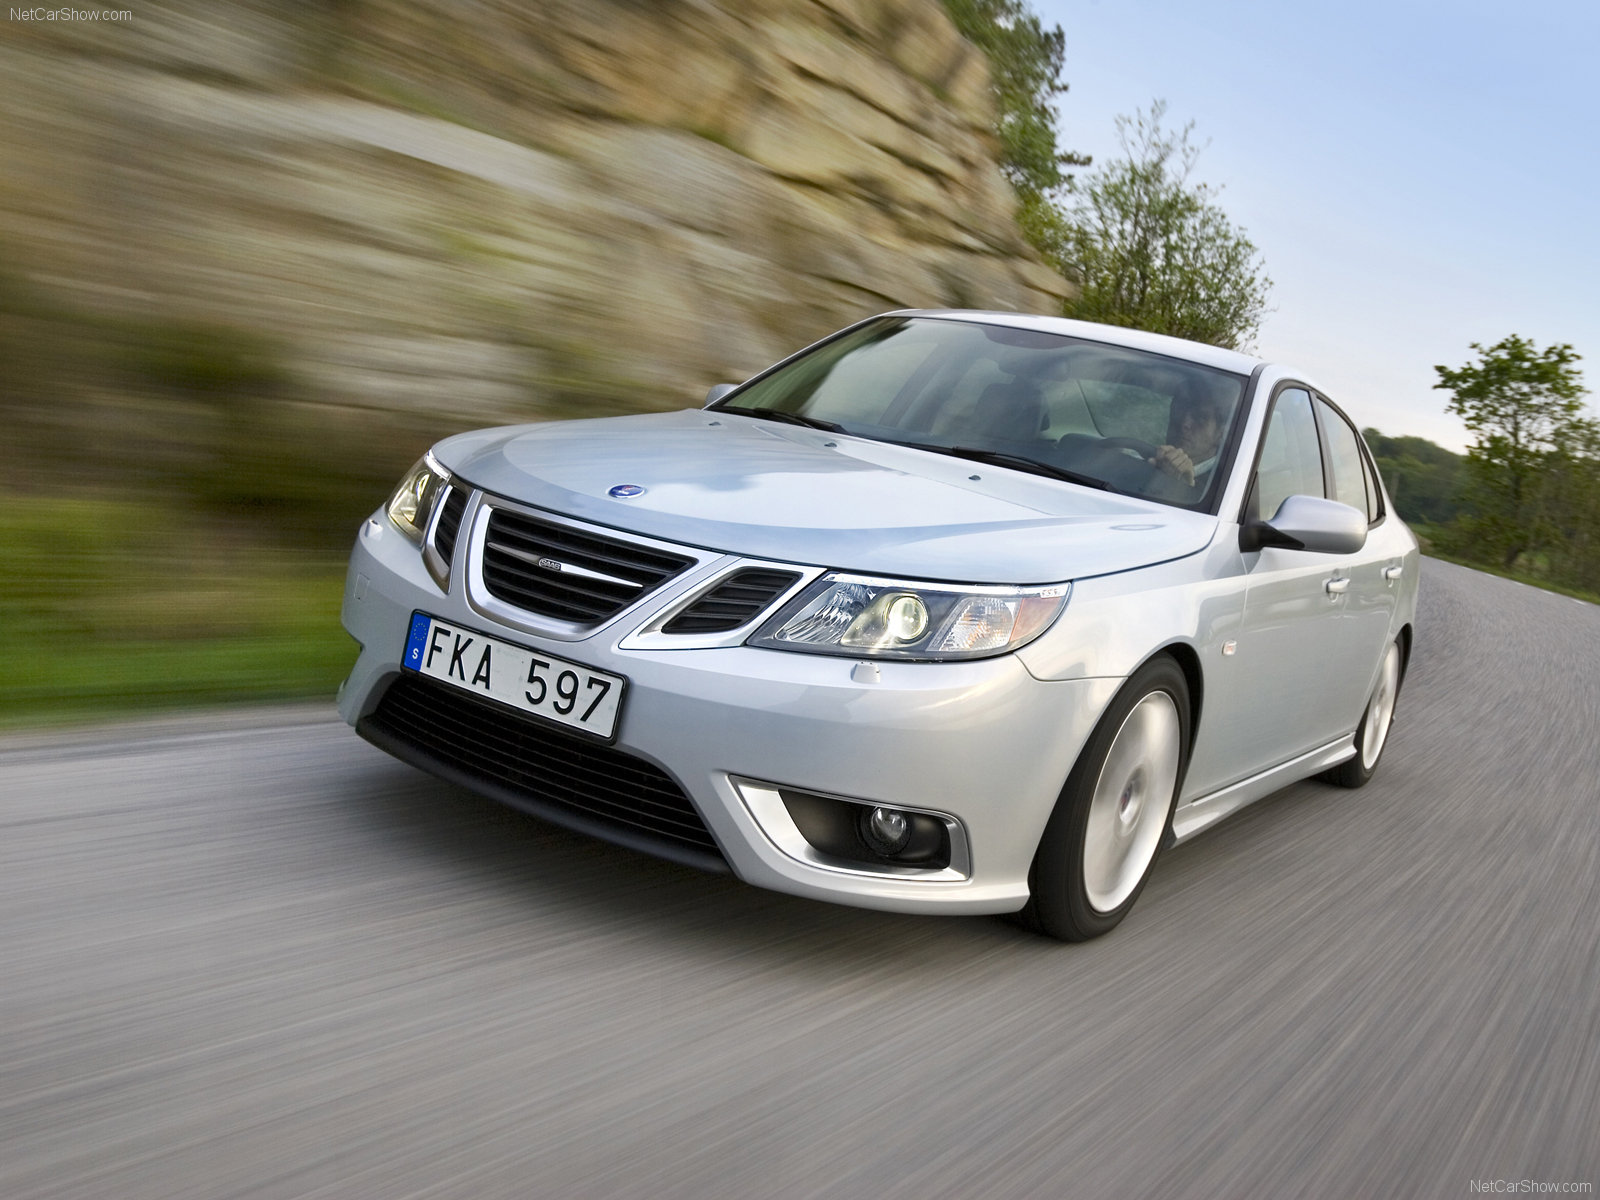 2008 saab 9 3 information and photos zombiedrive. Black Bedroom Furniture Sets. Home Design Ideas